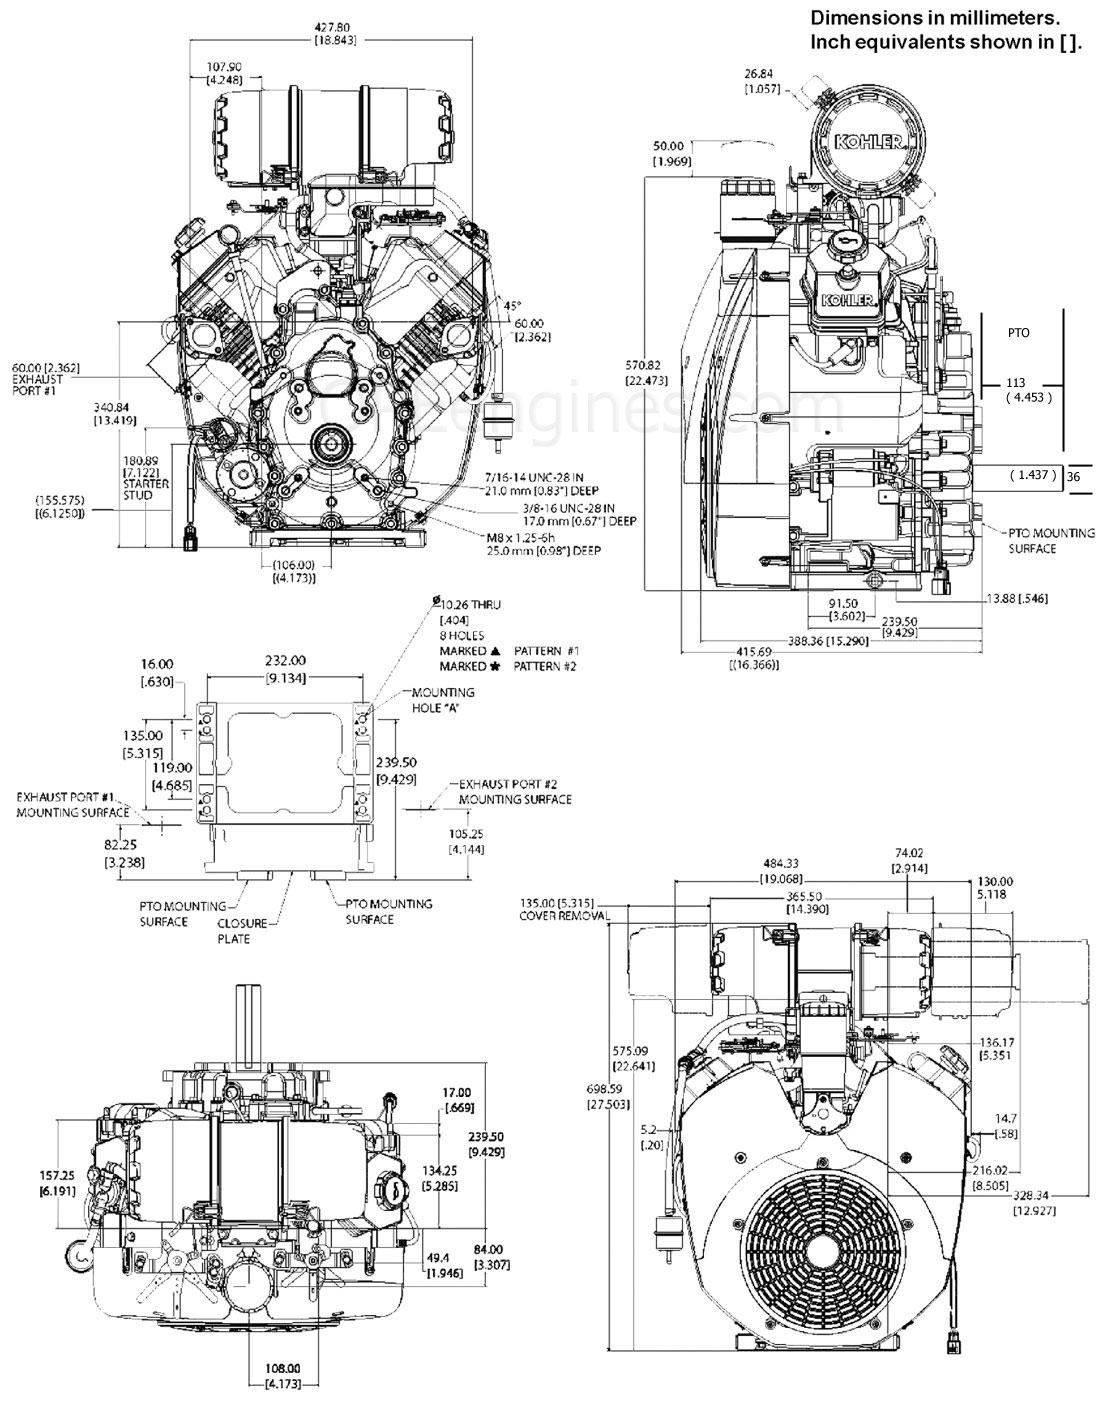 CH980_drawings?resize=680%2C878&ssl=1 25 hp kohler wiring diagram kohler command 25 hp diagram, kohler kohler engine charging system diagram at aneh.co